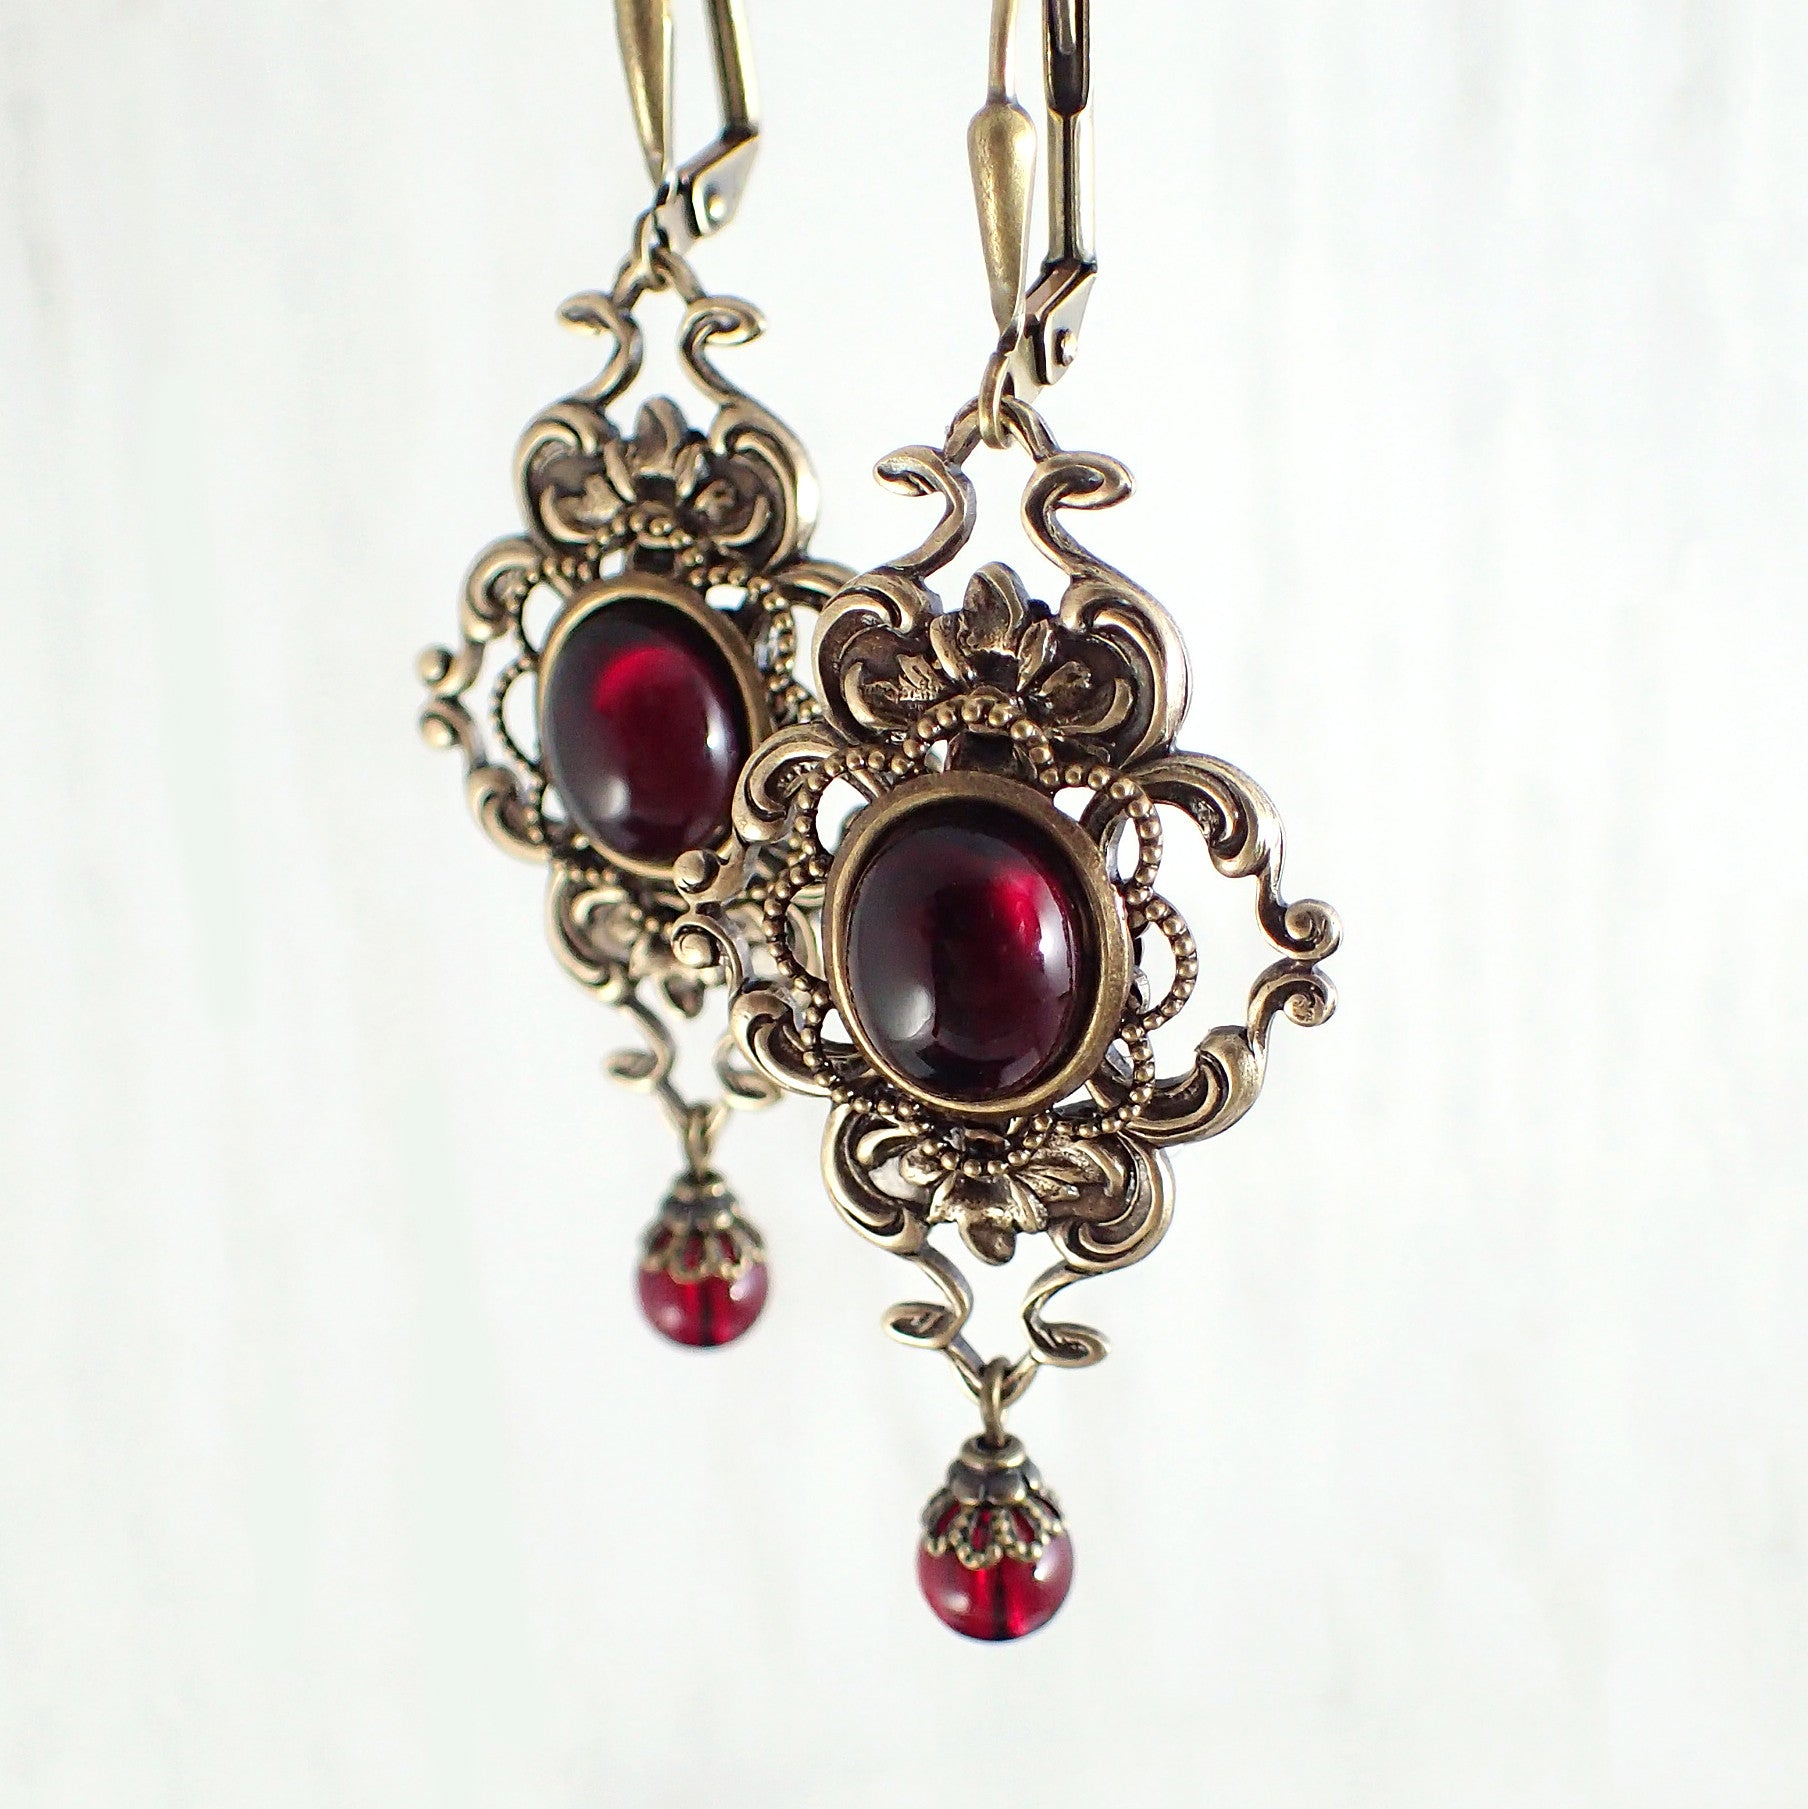 2369569d3 Deep Red Cabochon and Filigree Earrings - Ardent Hearts Designs ...